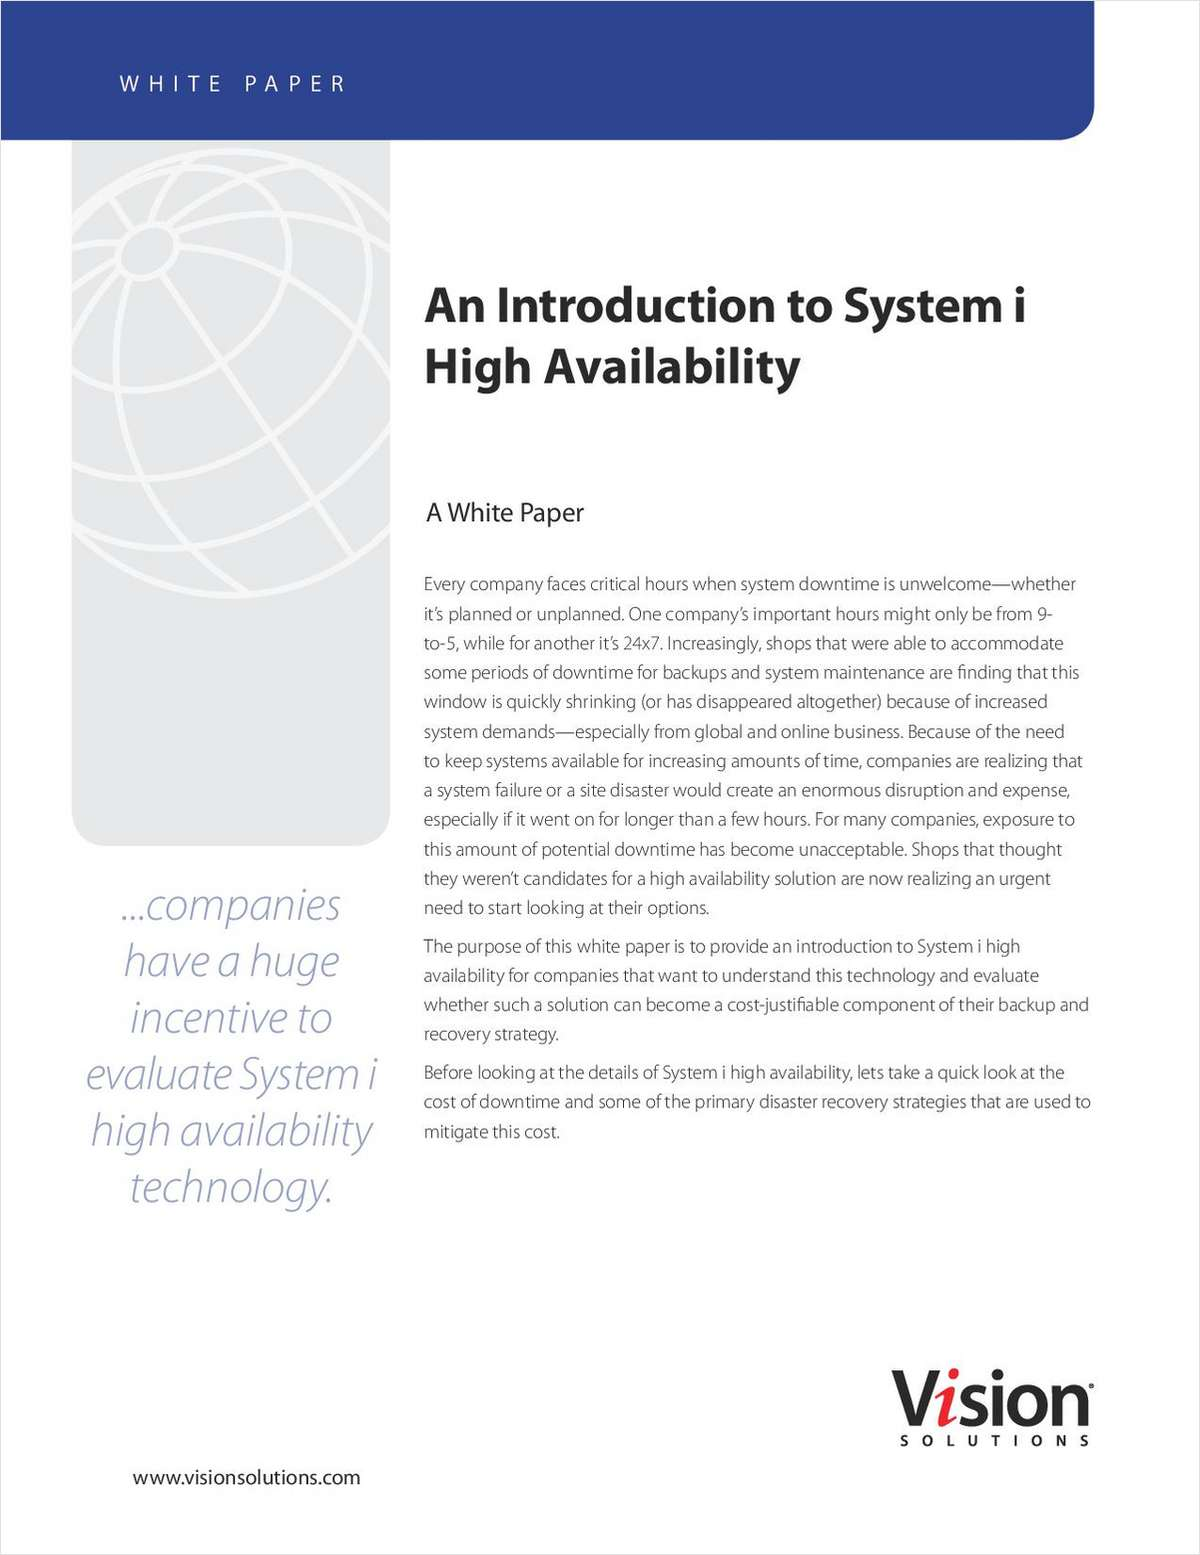 High Availability on IBM System i (AS/400) - An Introduction